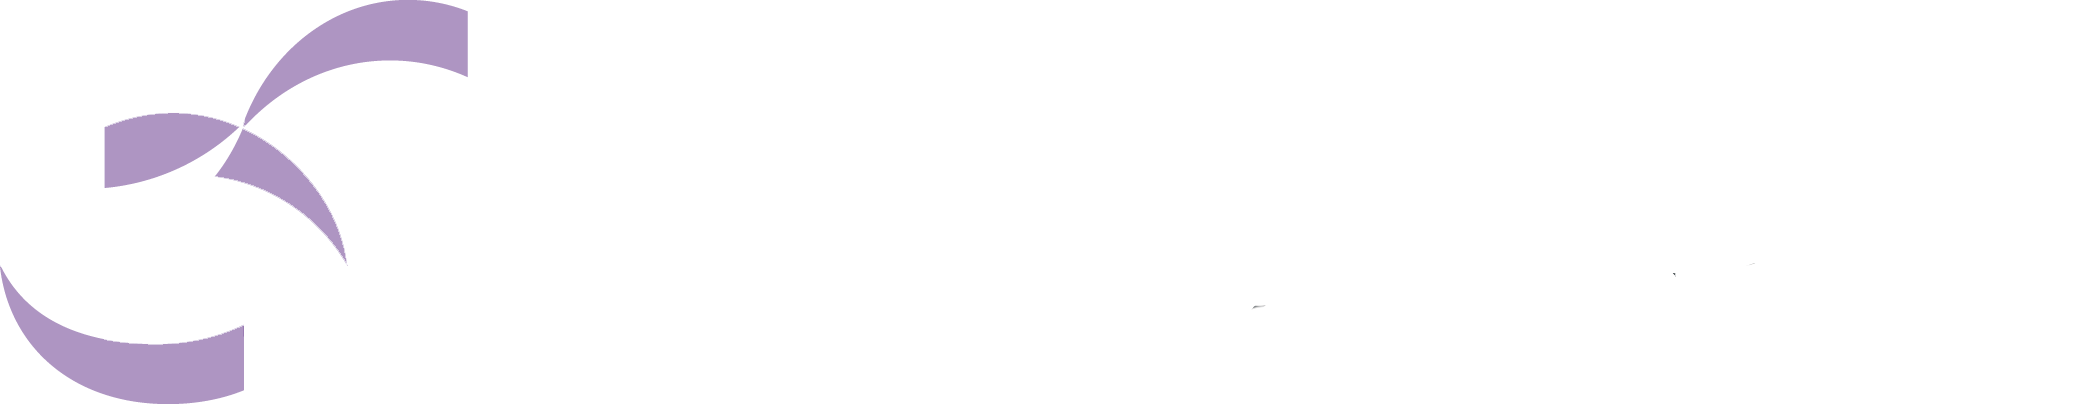 CHRISTUS Foundation for HealthCare